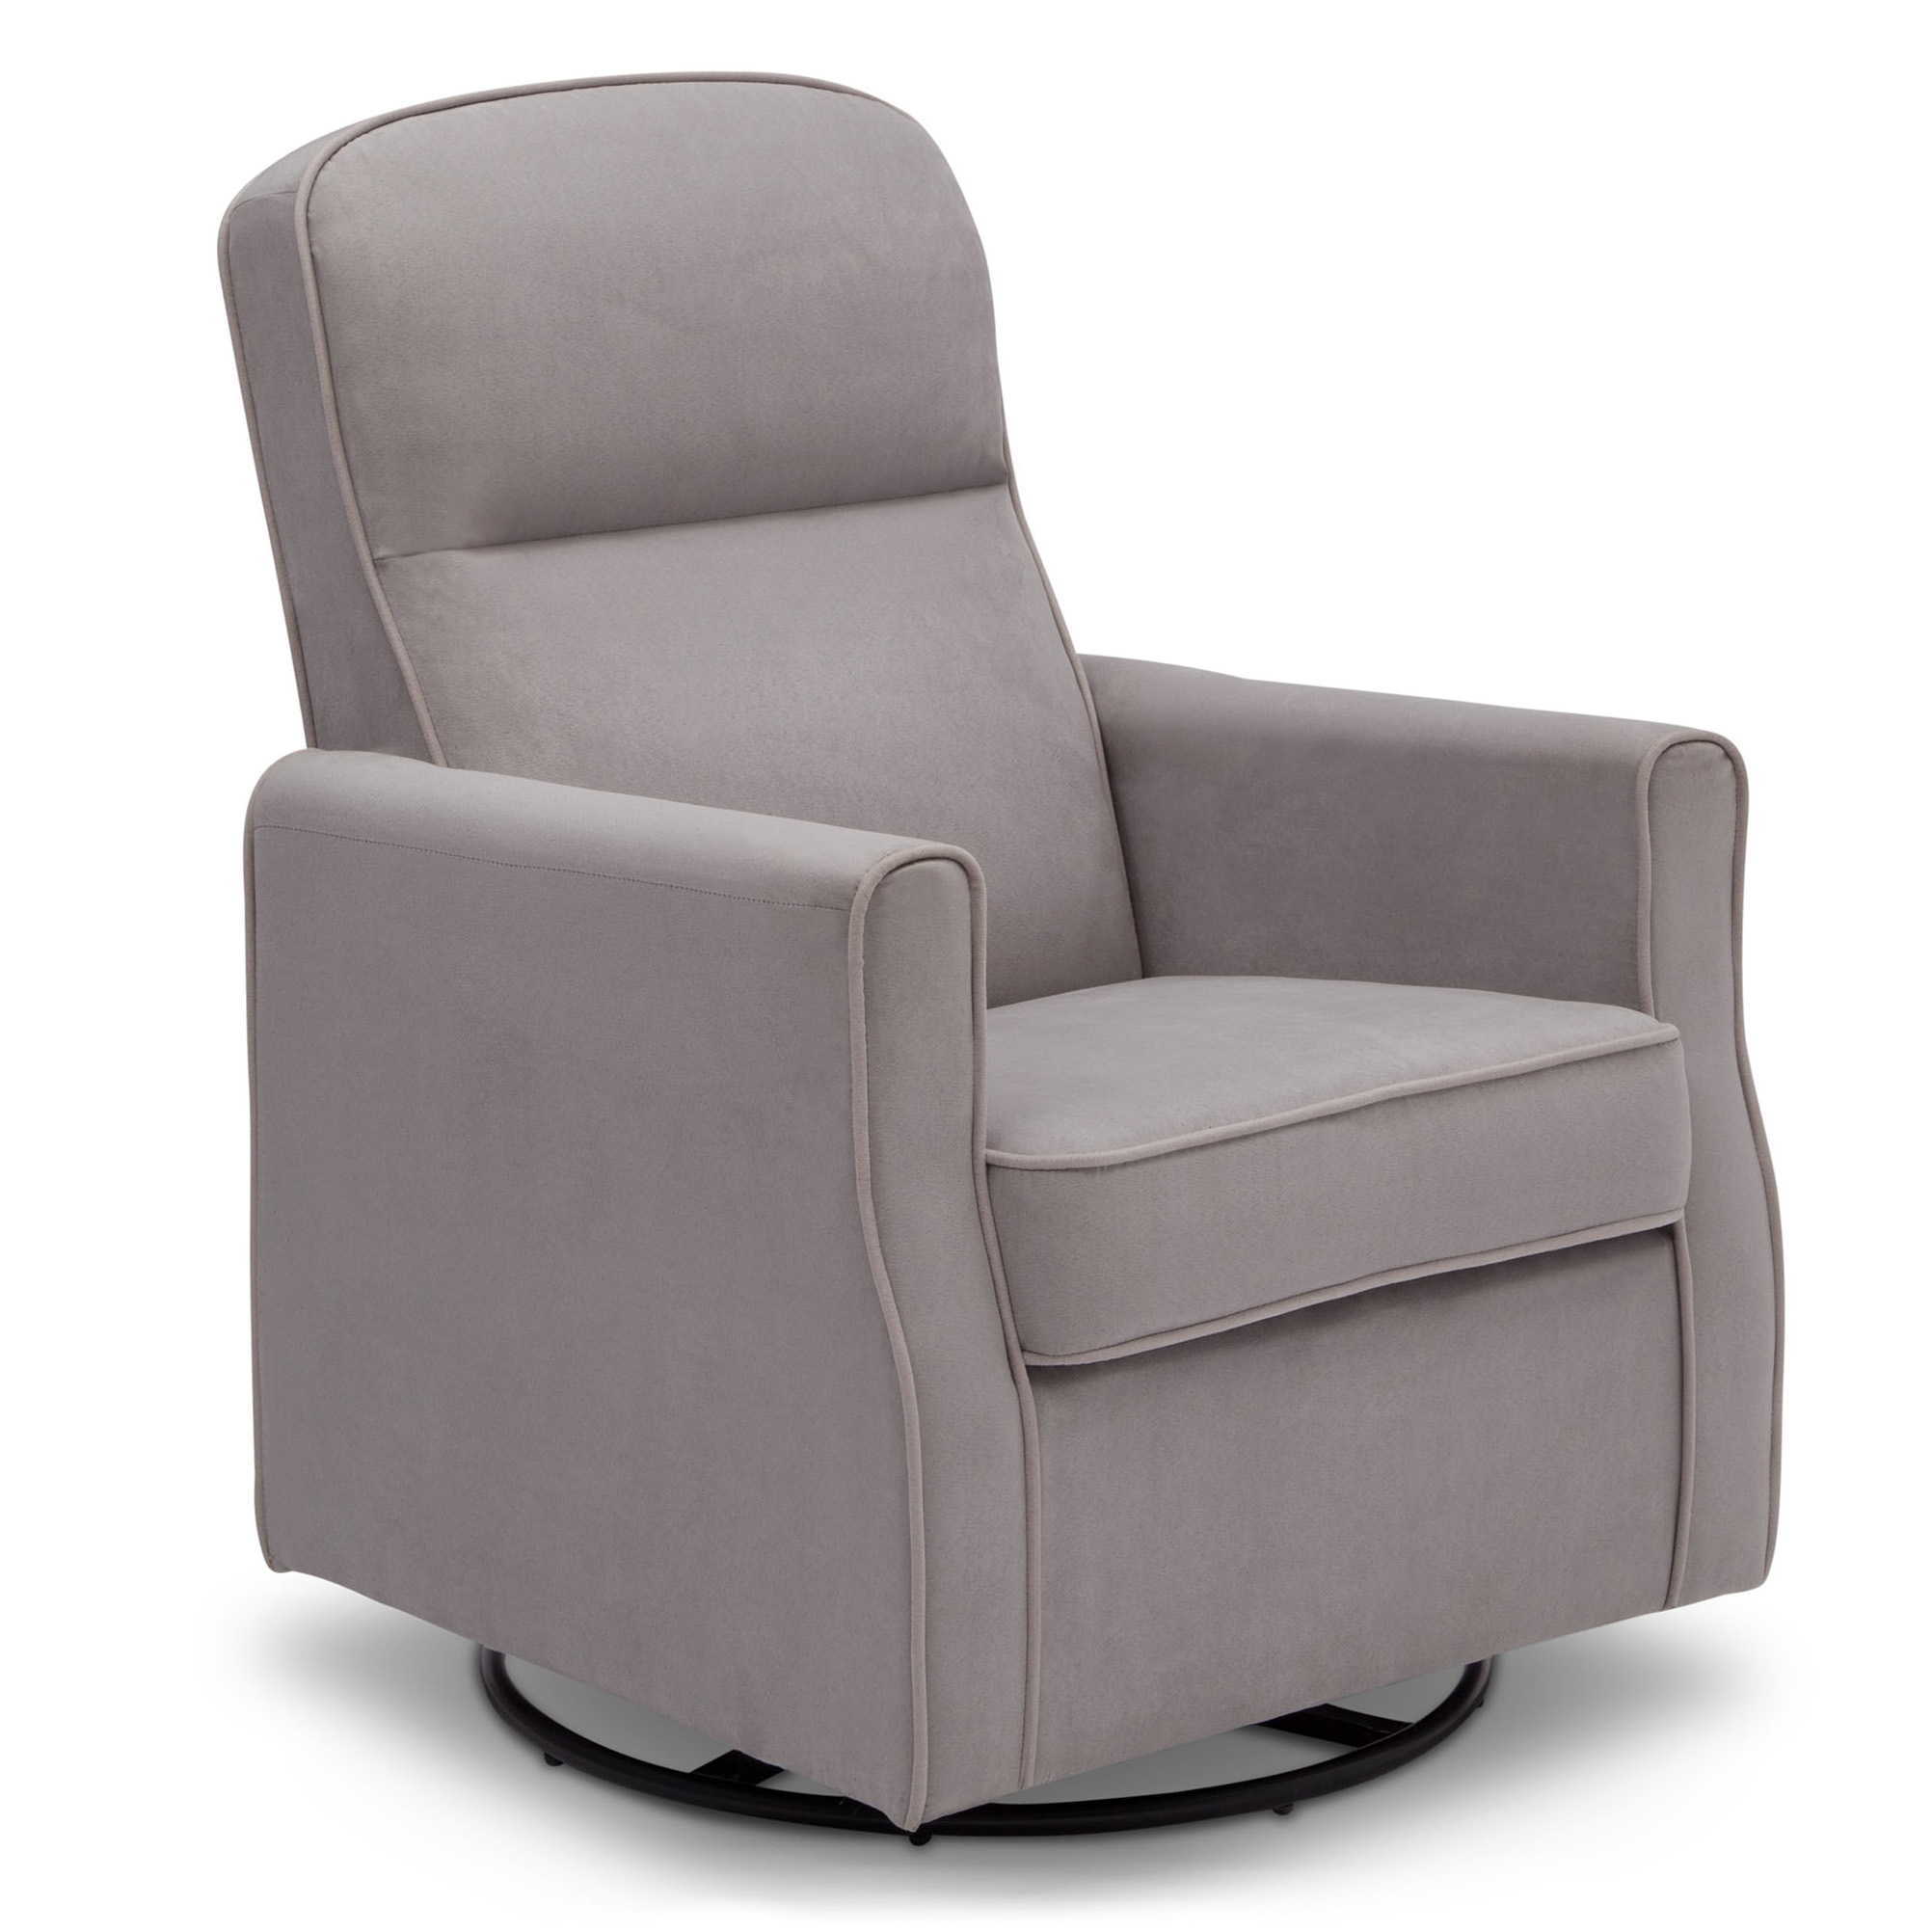 Delta children clair slim nursery glider swivel rocker chair walmart com